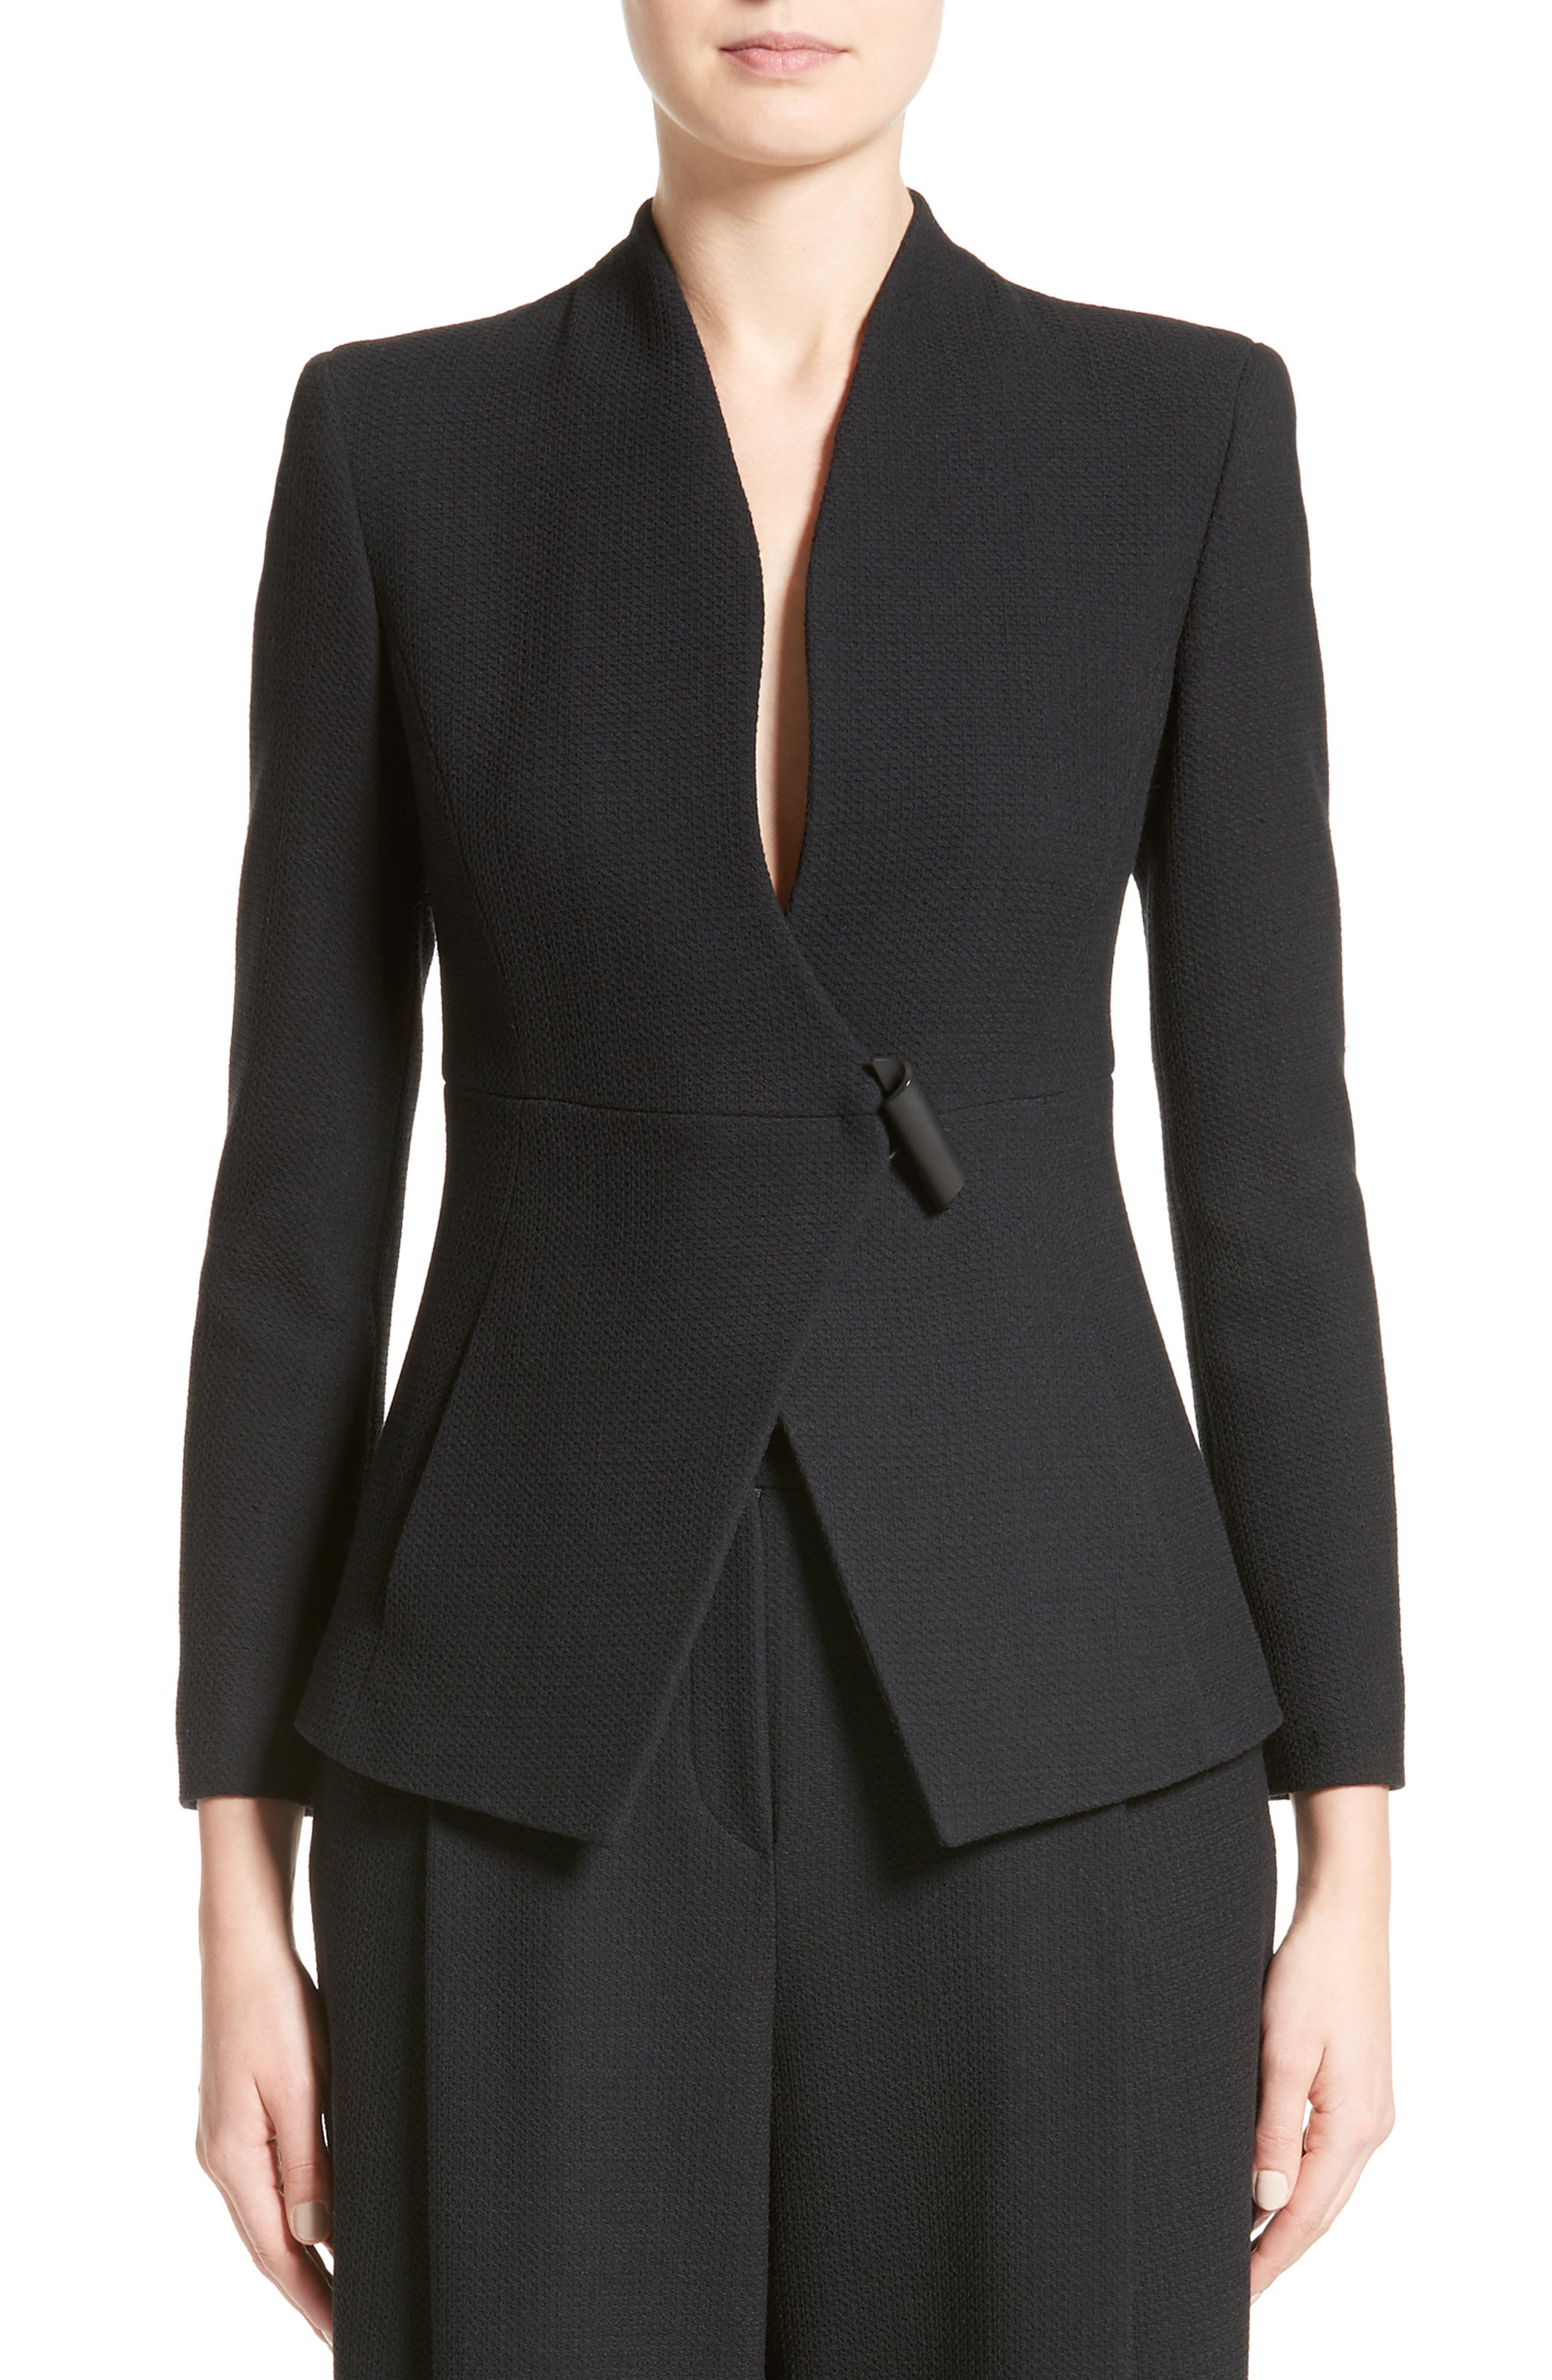 Textured Stretch Wool Jacket,                         Main,                         color, 001